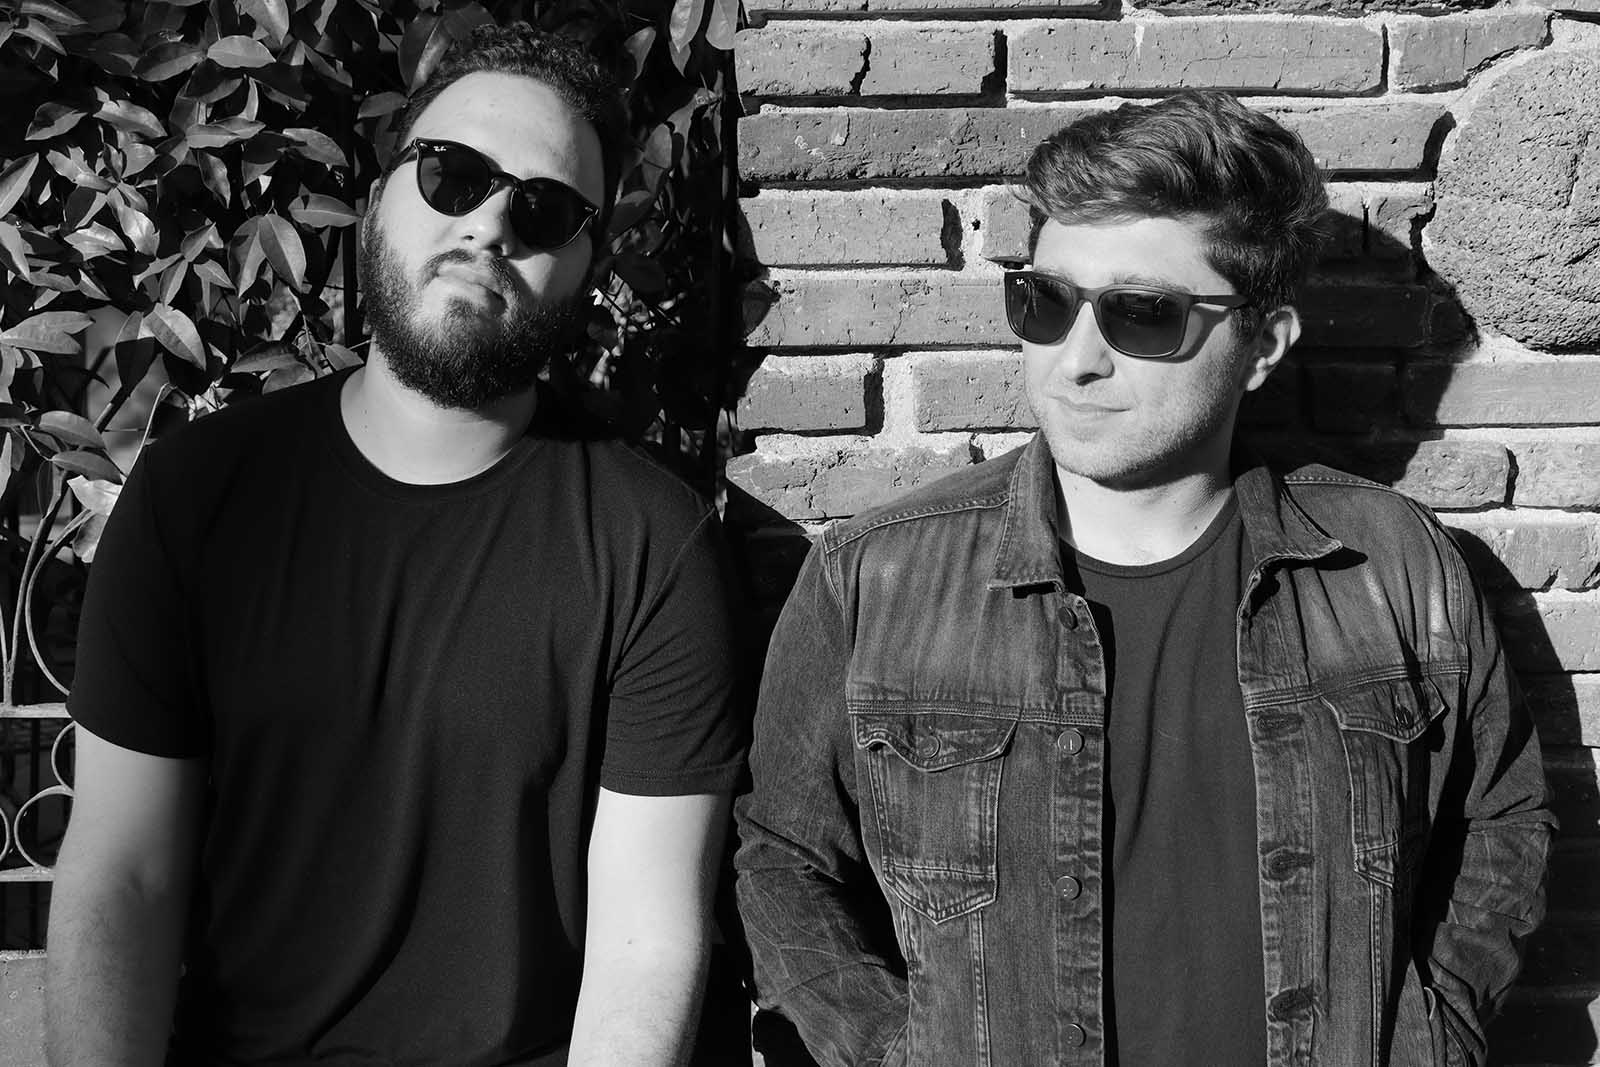 The Soundlings have been a composing duo for the longest time, but it's their soundtrack for 'Knockout City' that the world is realizing their talent.